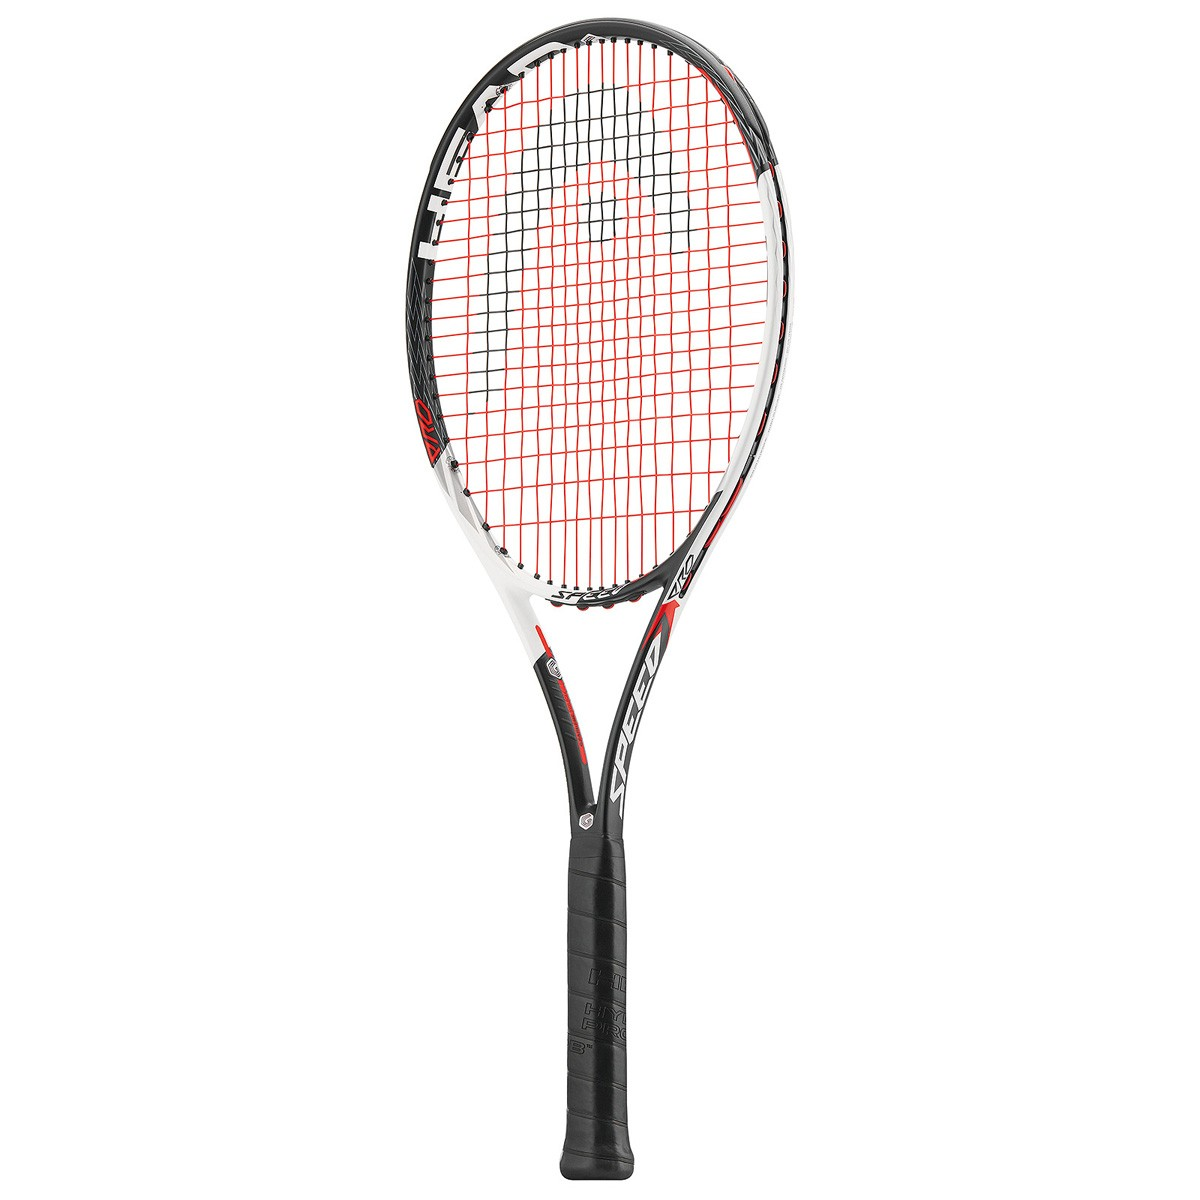 Rakieta tenisowa Head Graphene Touch Speed Pro + Lynx